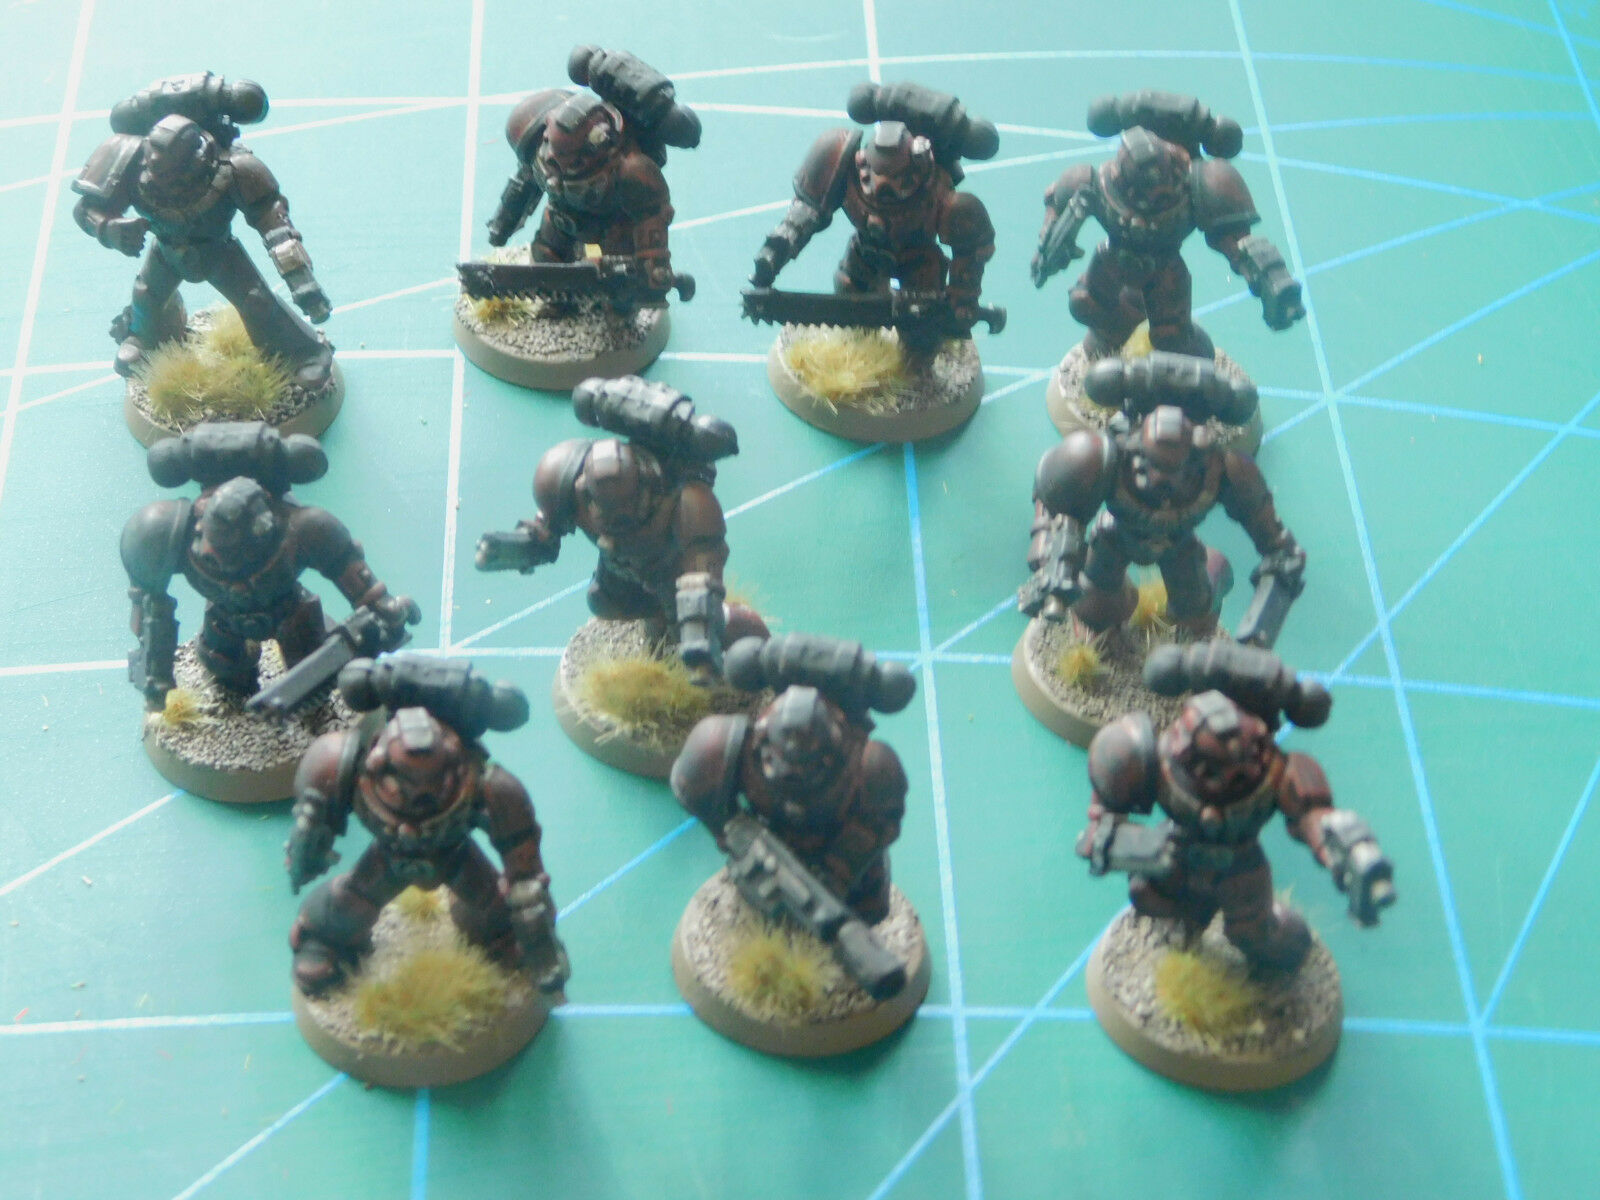 10 warhammer 40k dungeons dragons space marine painted plastic figures